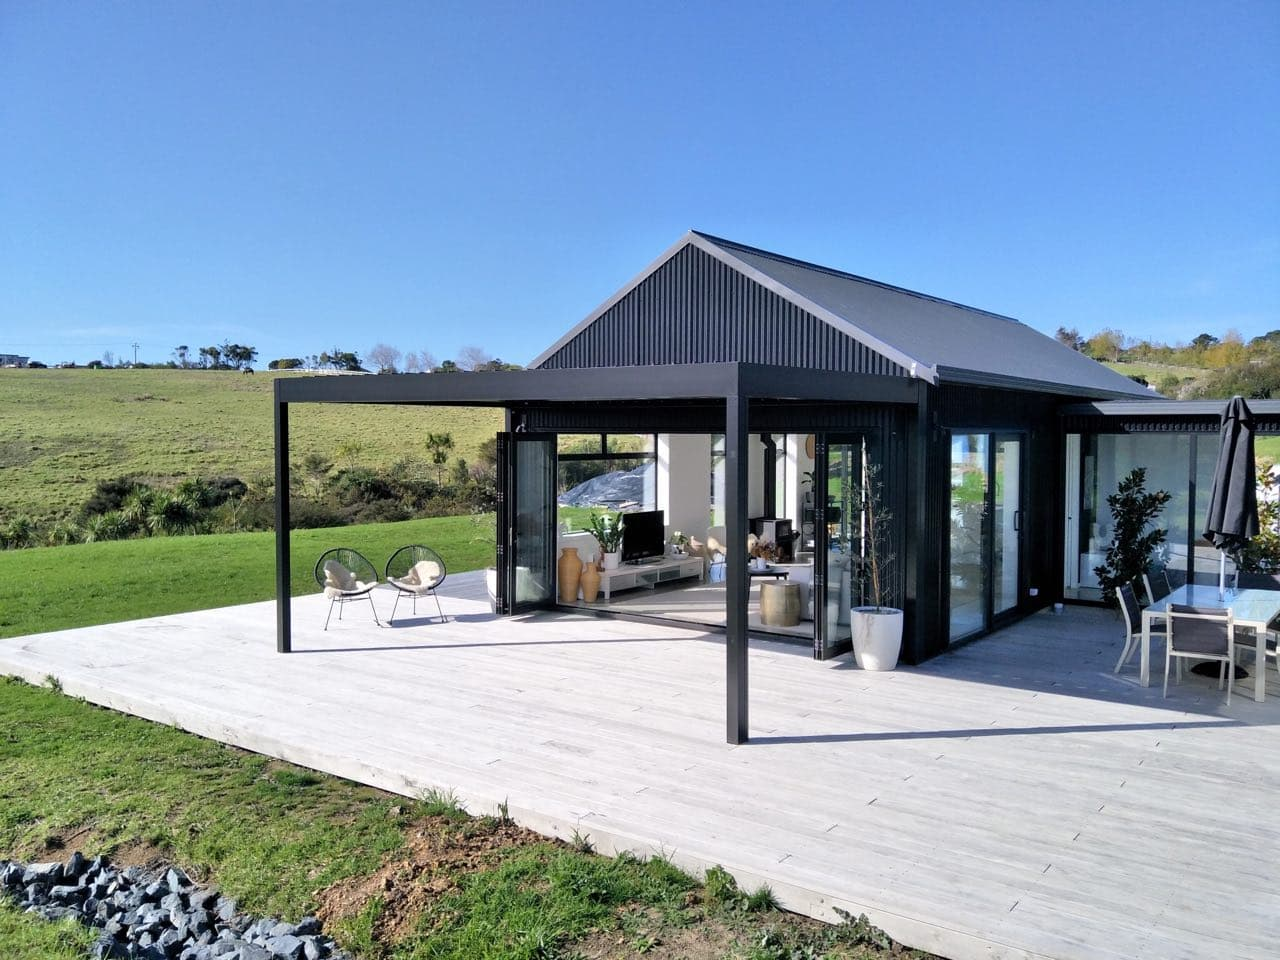 Black louvre against black gable end covering deck area with outdoor seats